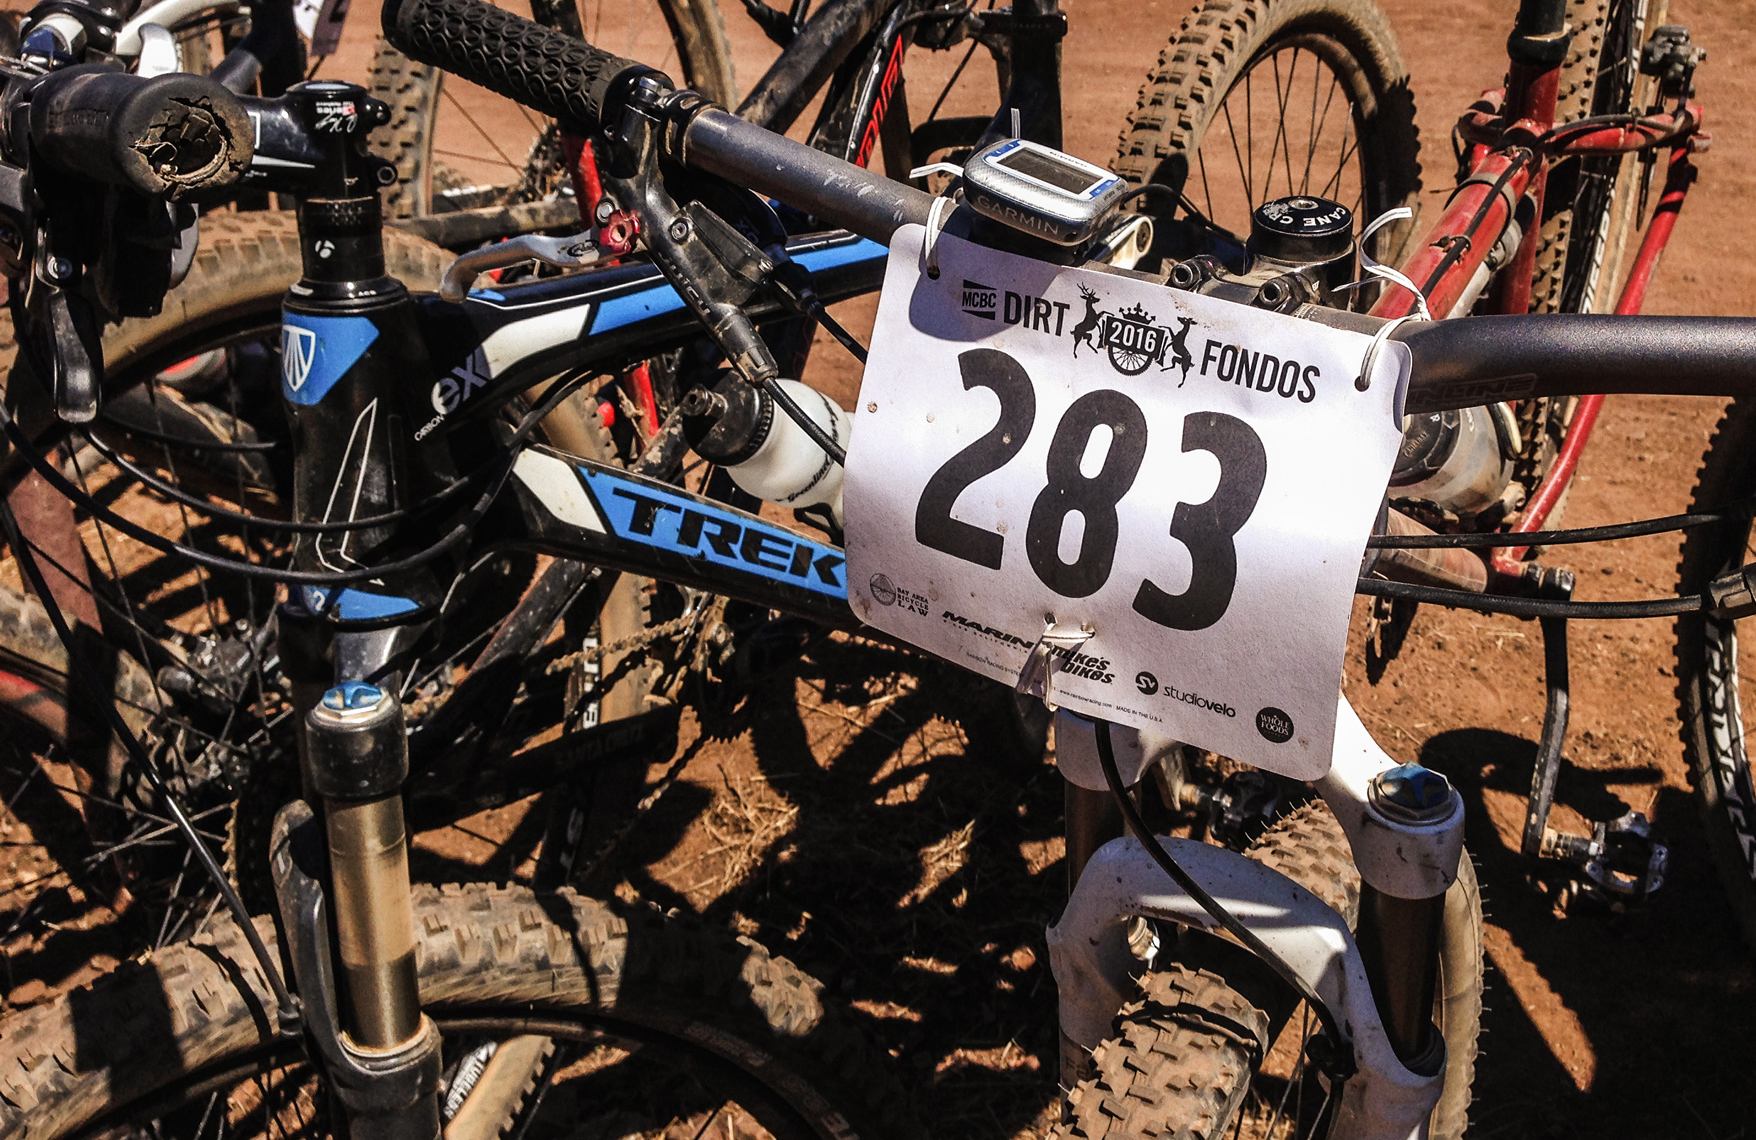 Race number on front of mountain bike with Dirt Fondo logo